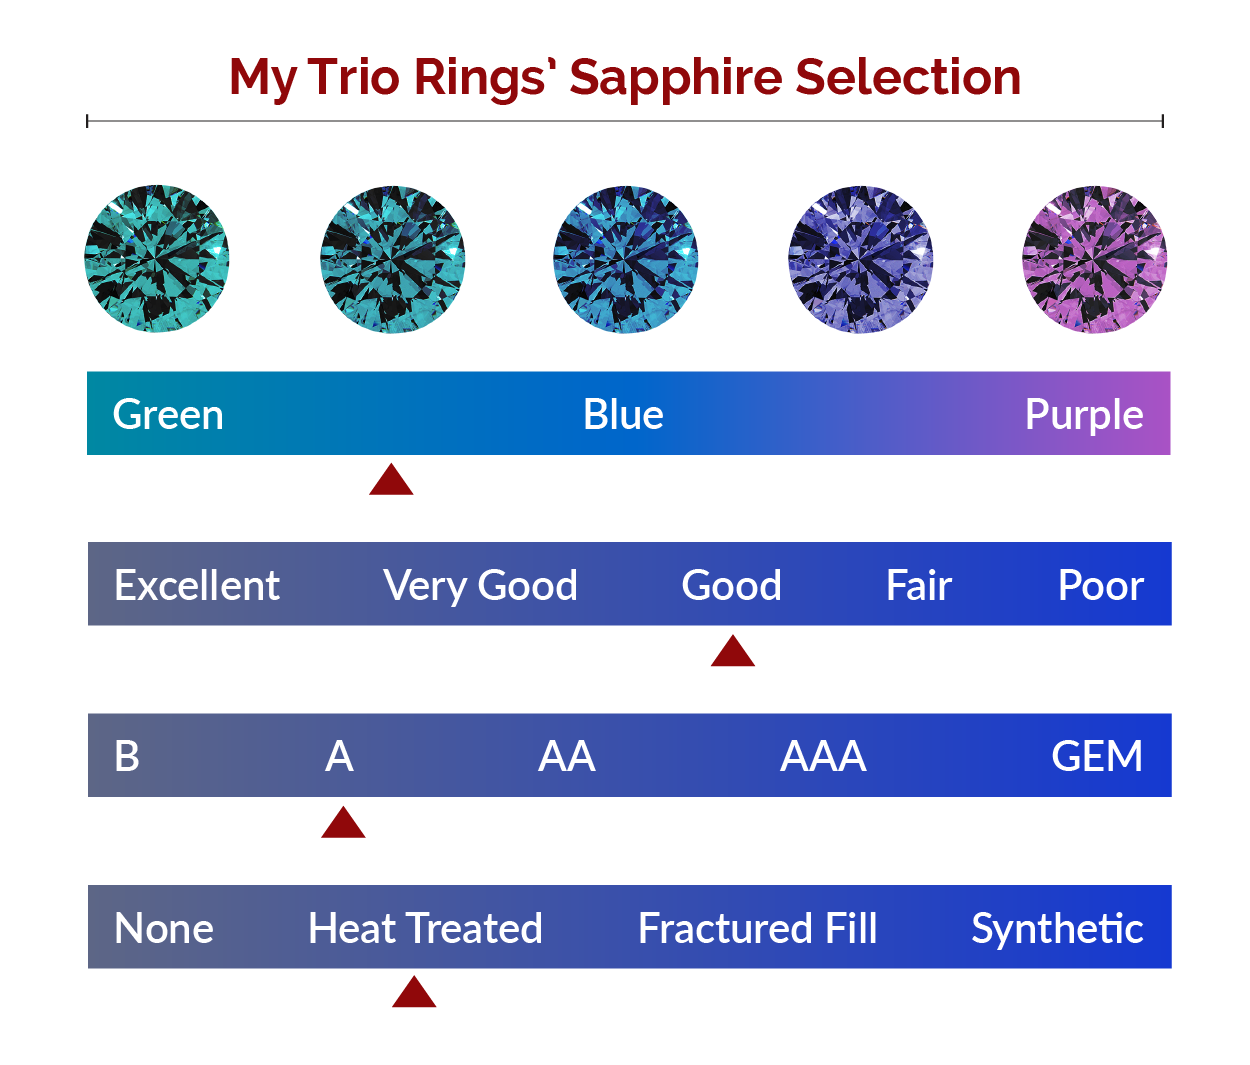 My Trio Rings Sapphire Selection